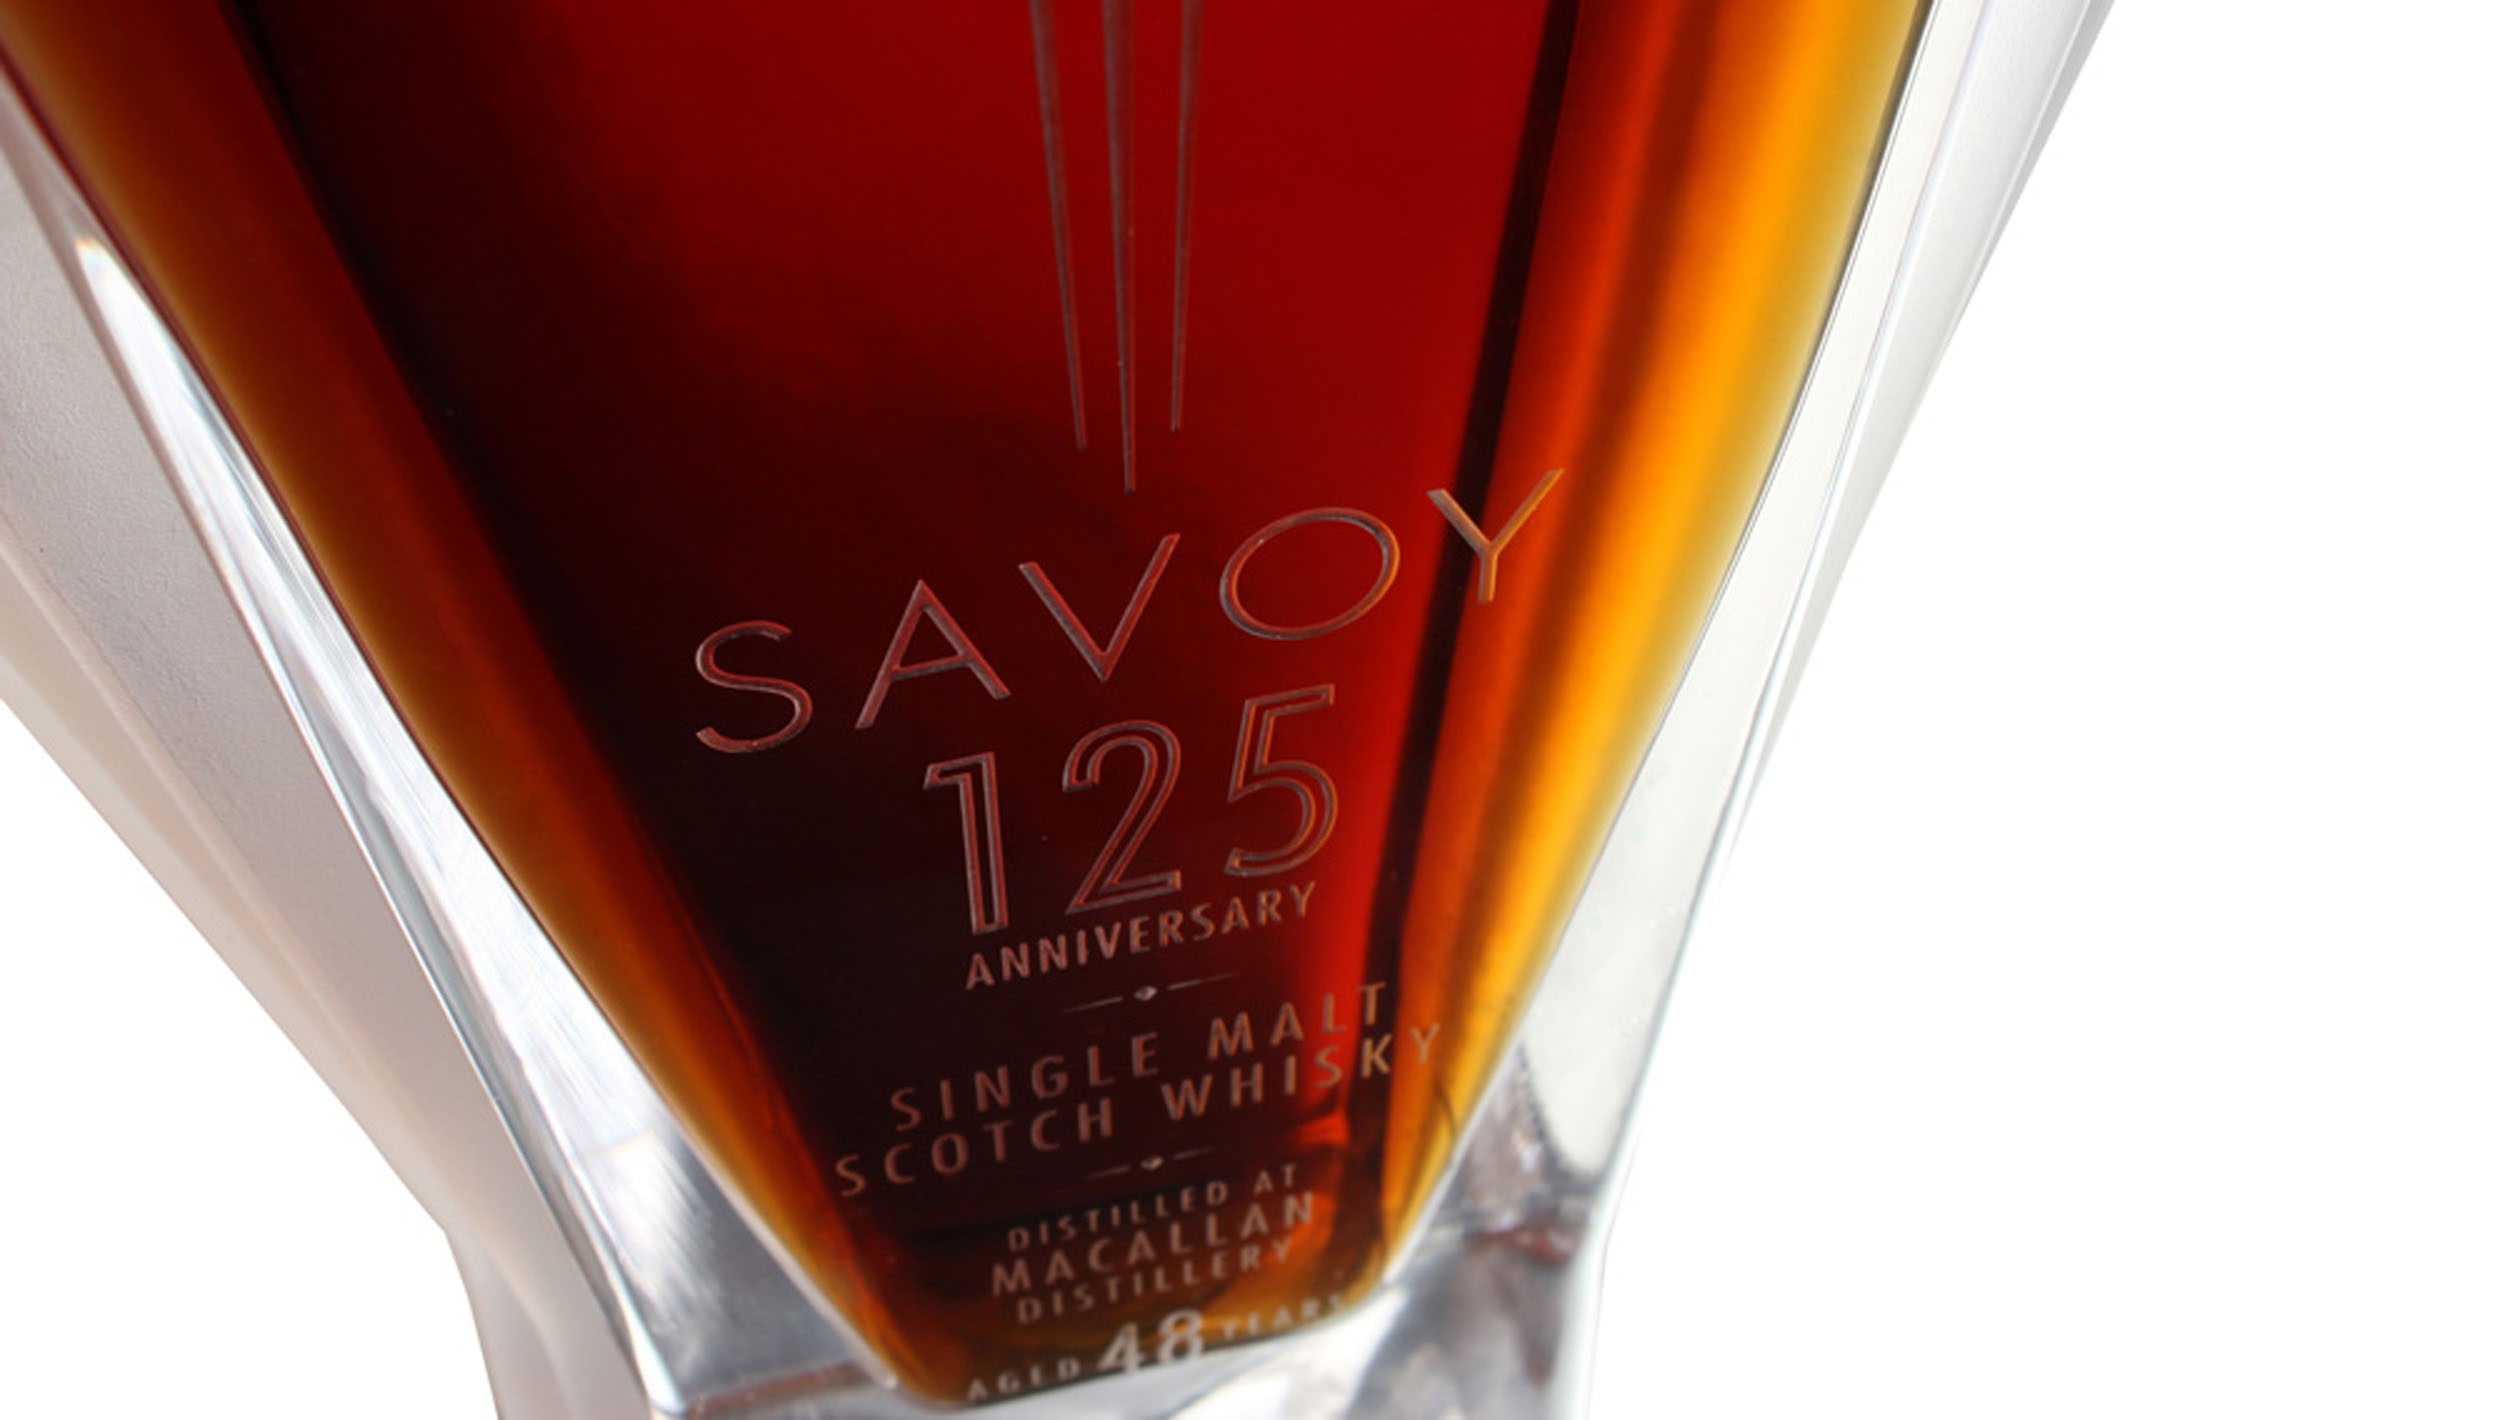 5_the-savoy-125th-anniversary-scoth.jpg